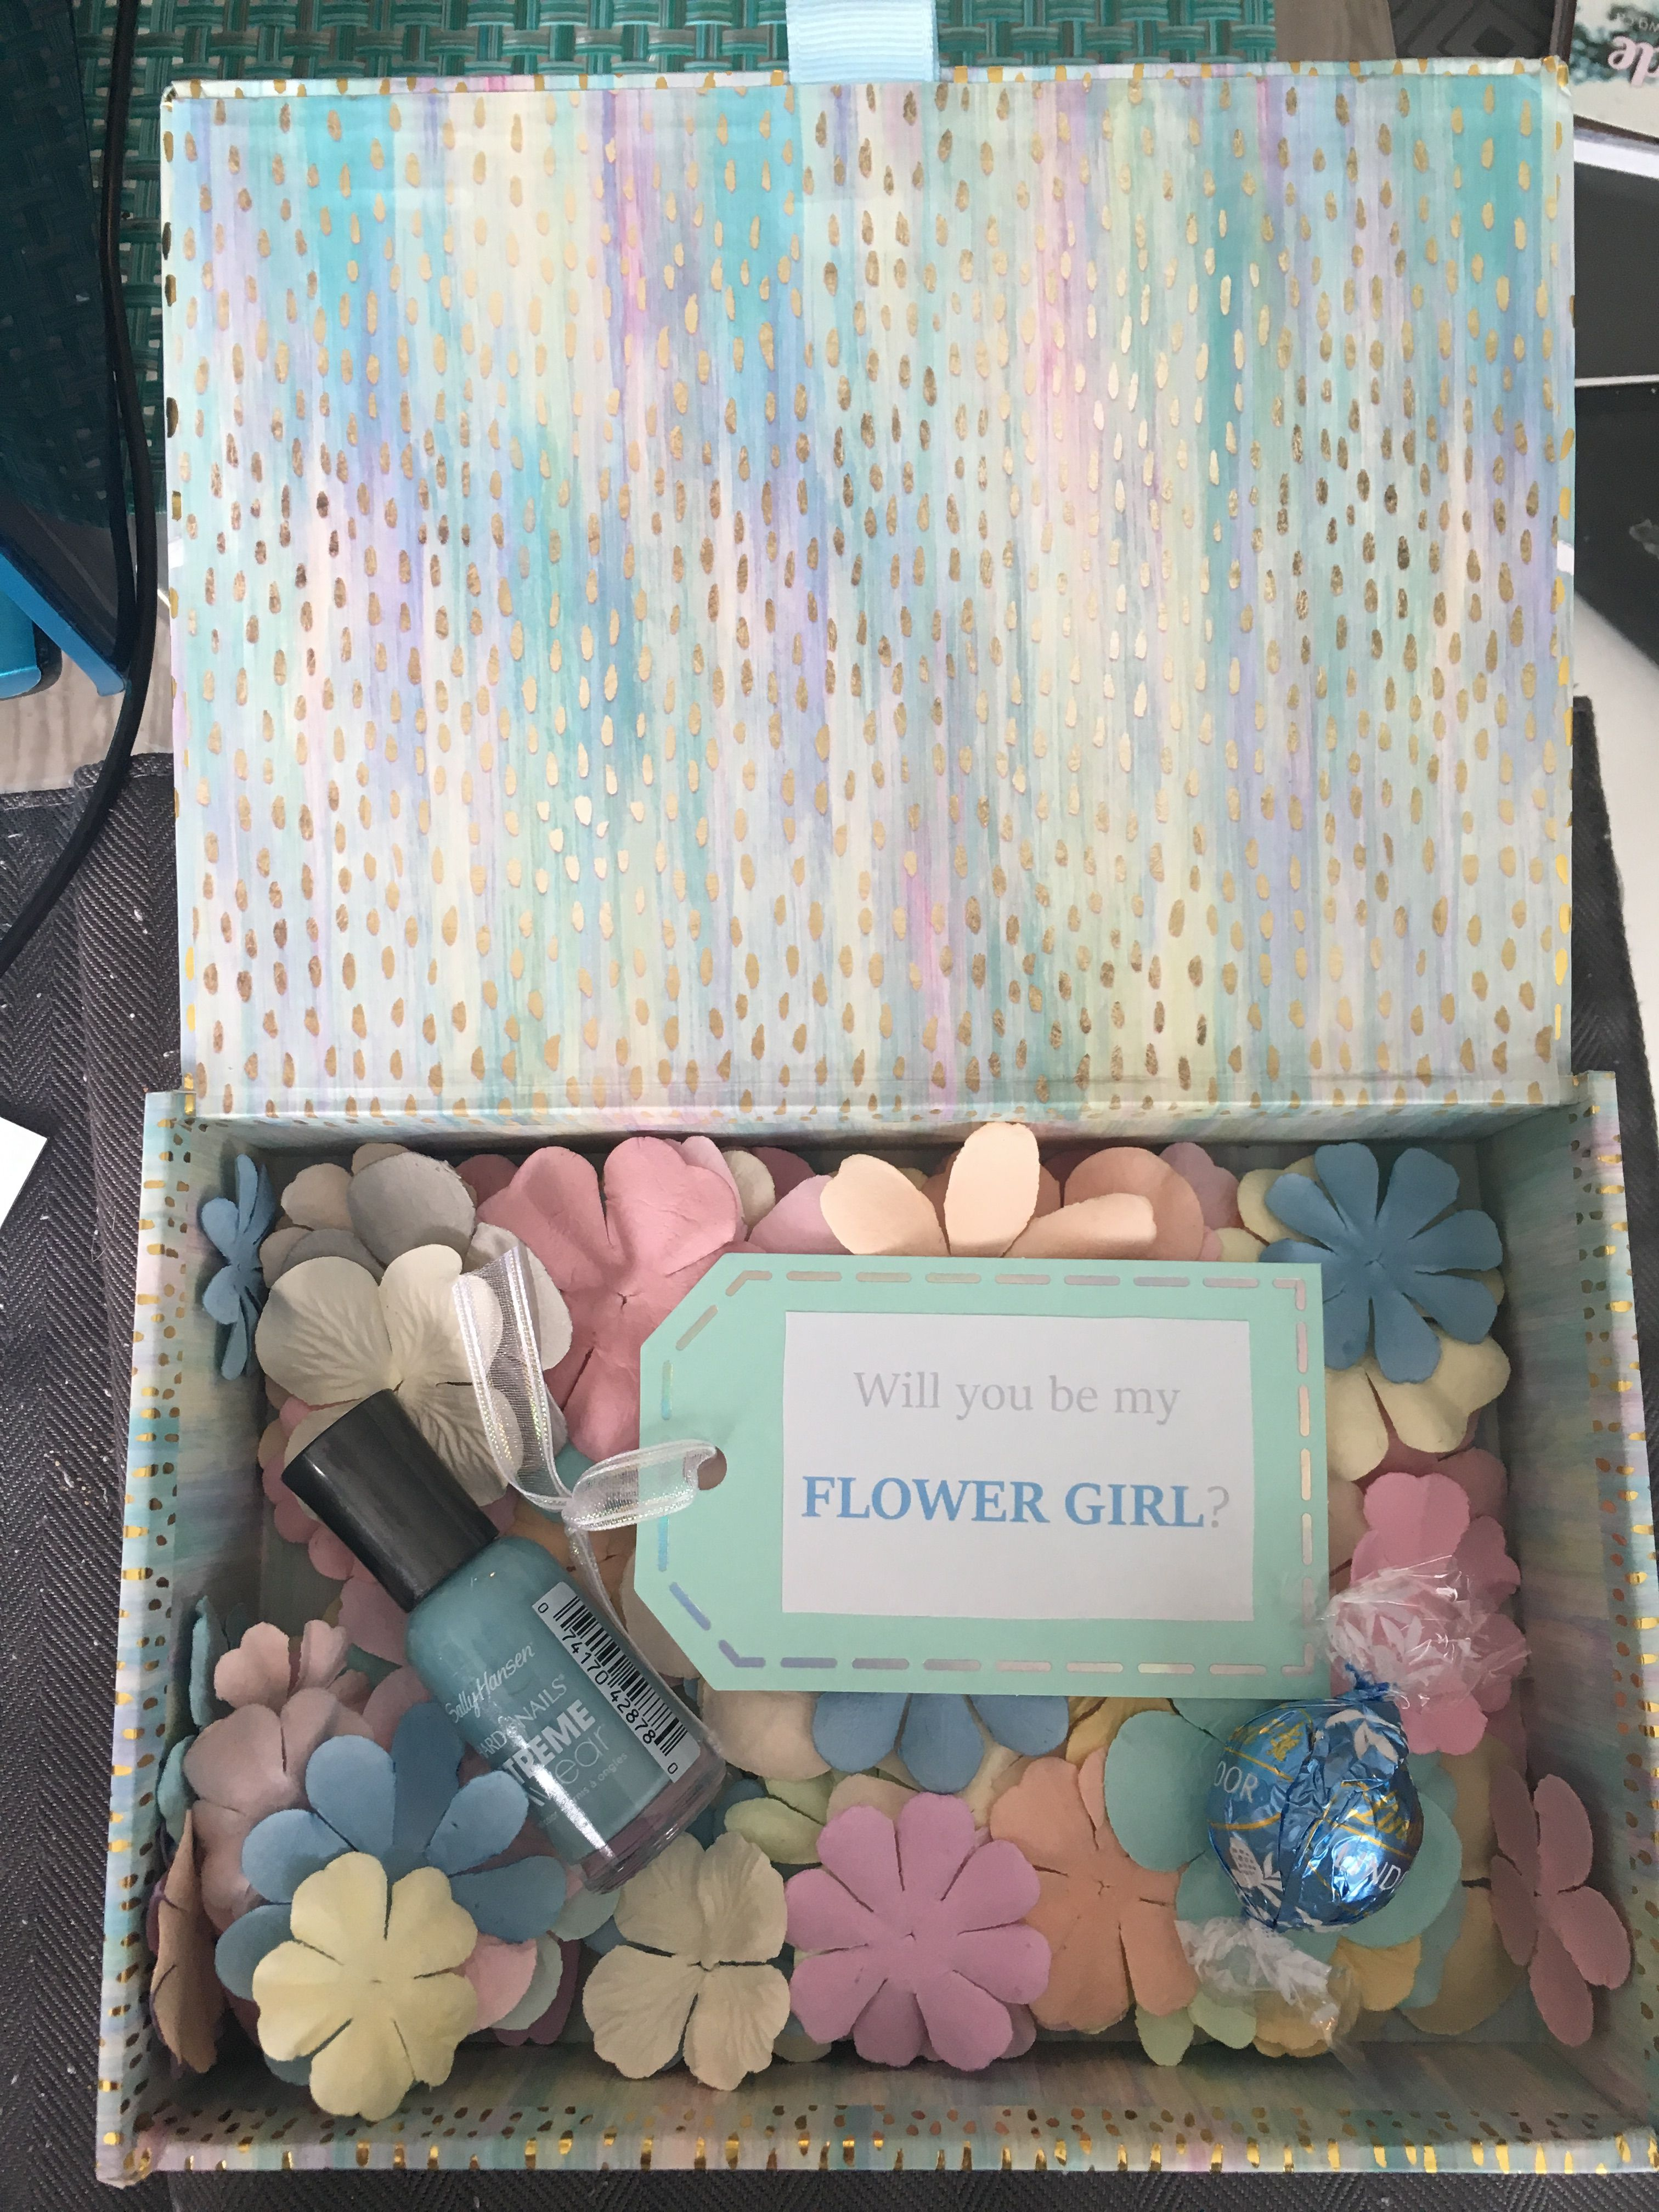 Flower girl proposal box perfect and cute way to ask your